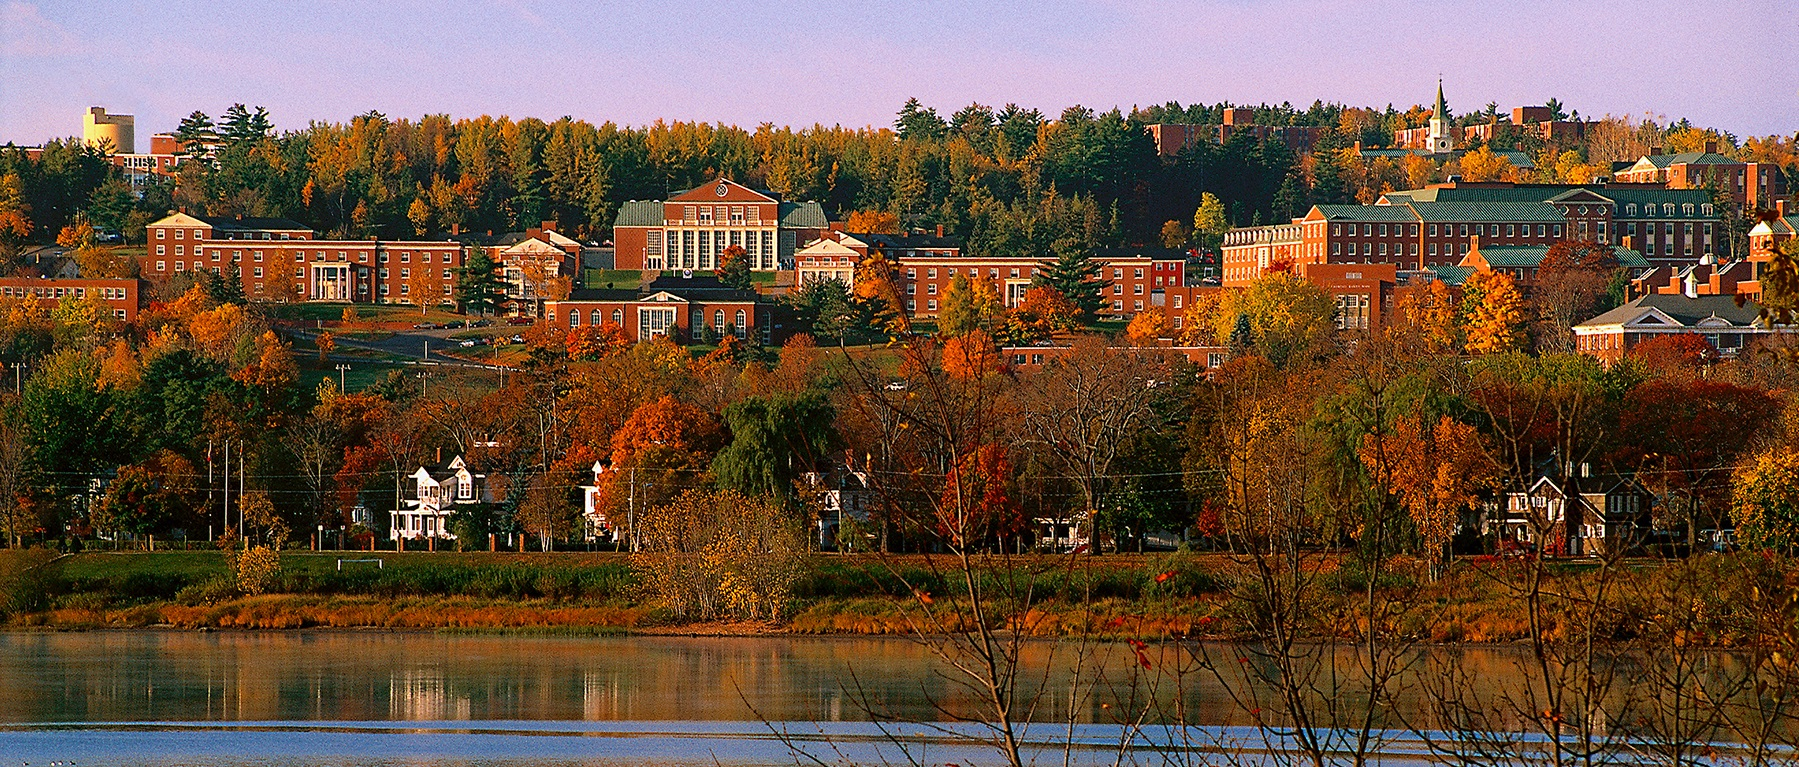 University of New Brunswick buildings